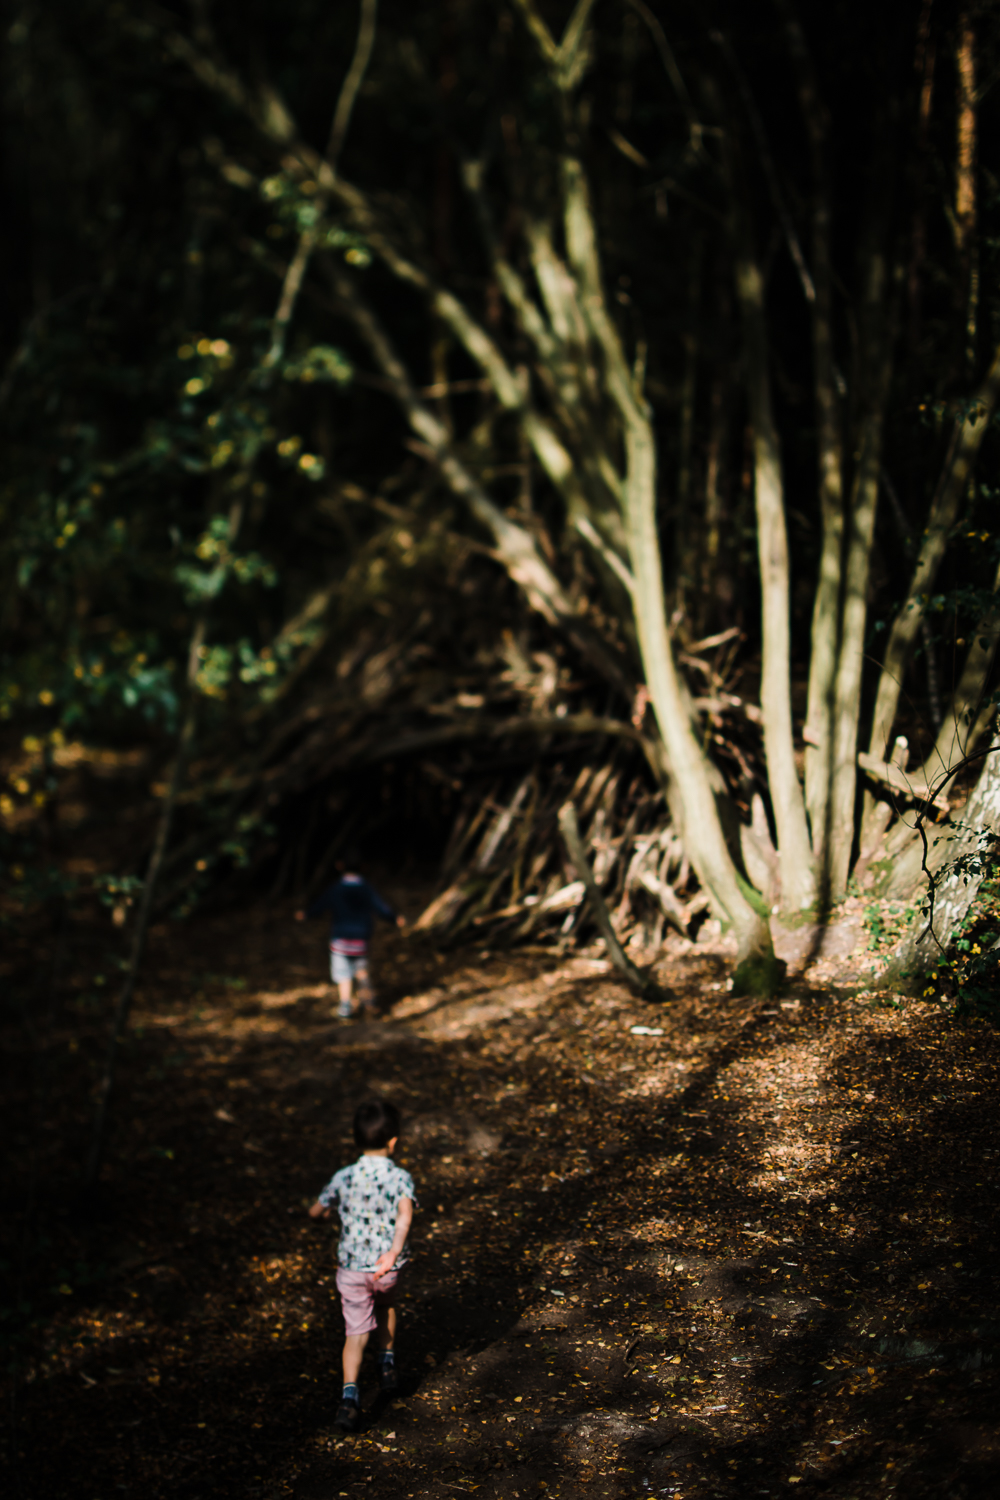 Freelensing - Free 52 project - Sept Oct 17 - Diana Hagues Photography-4.jpg